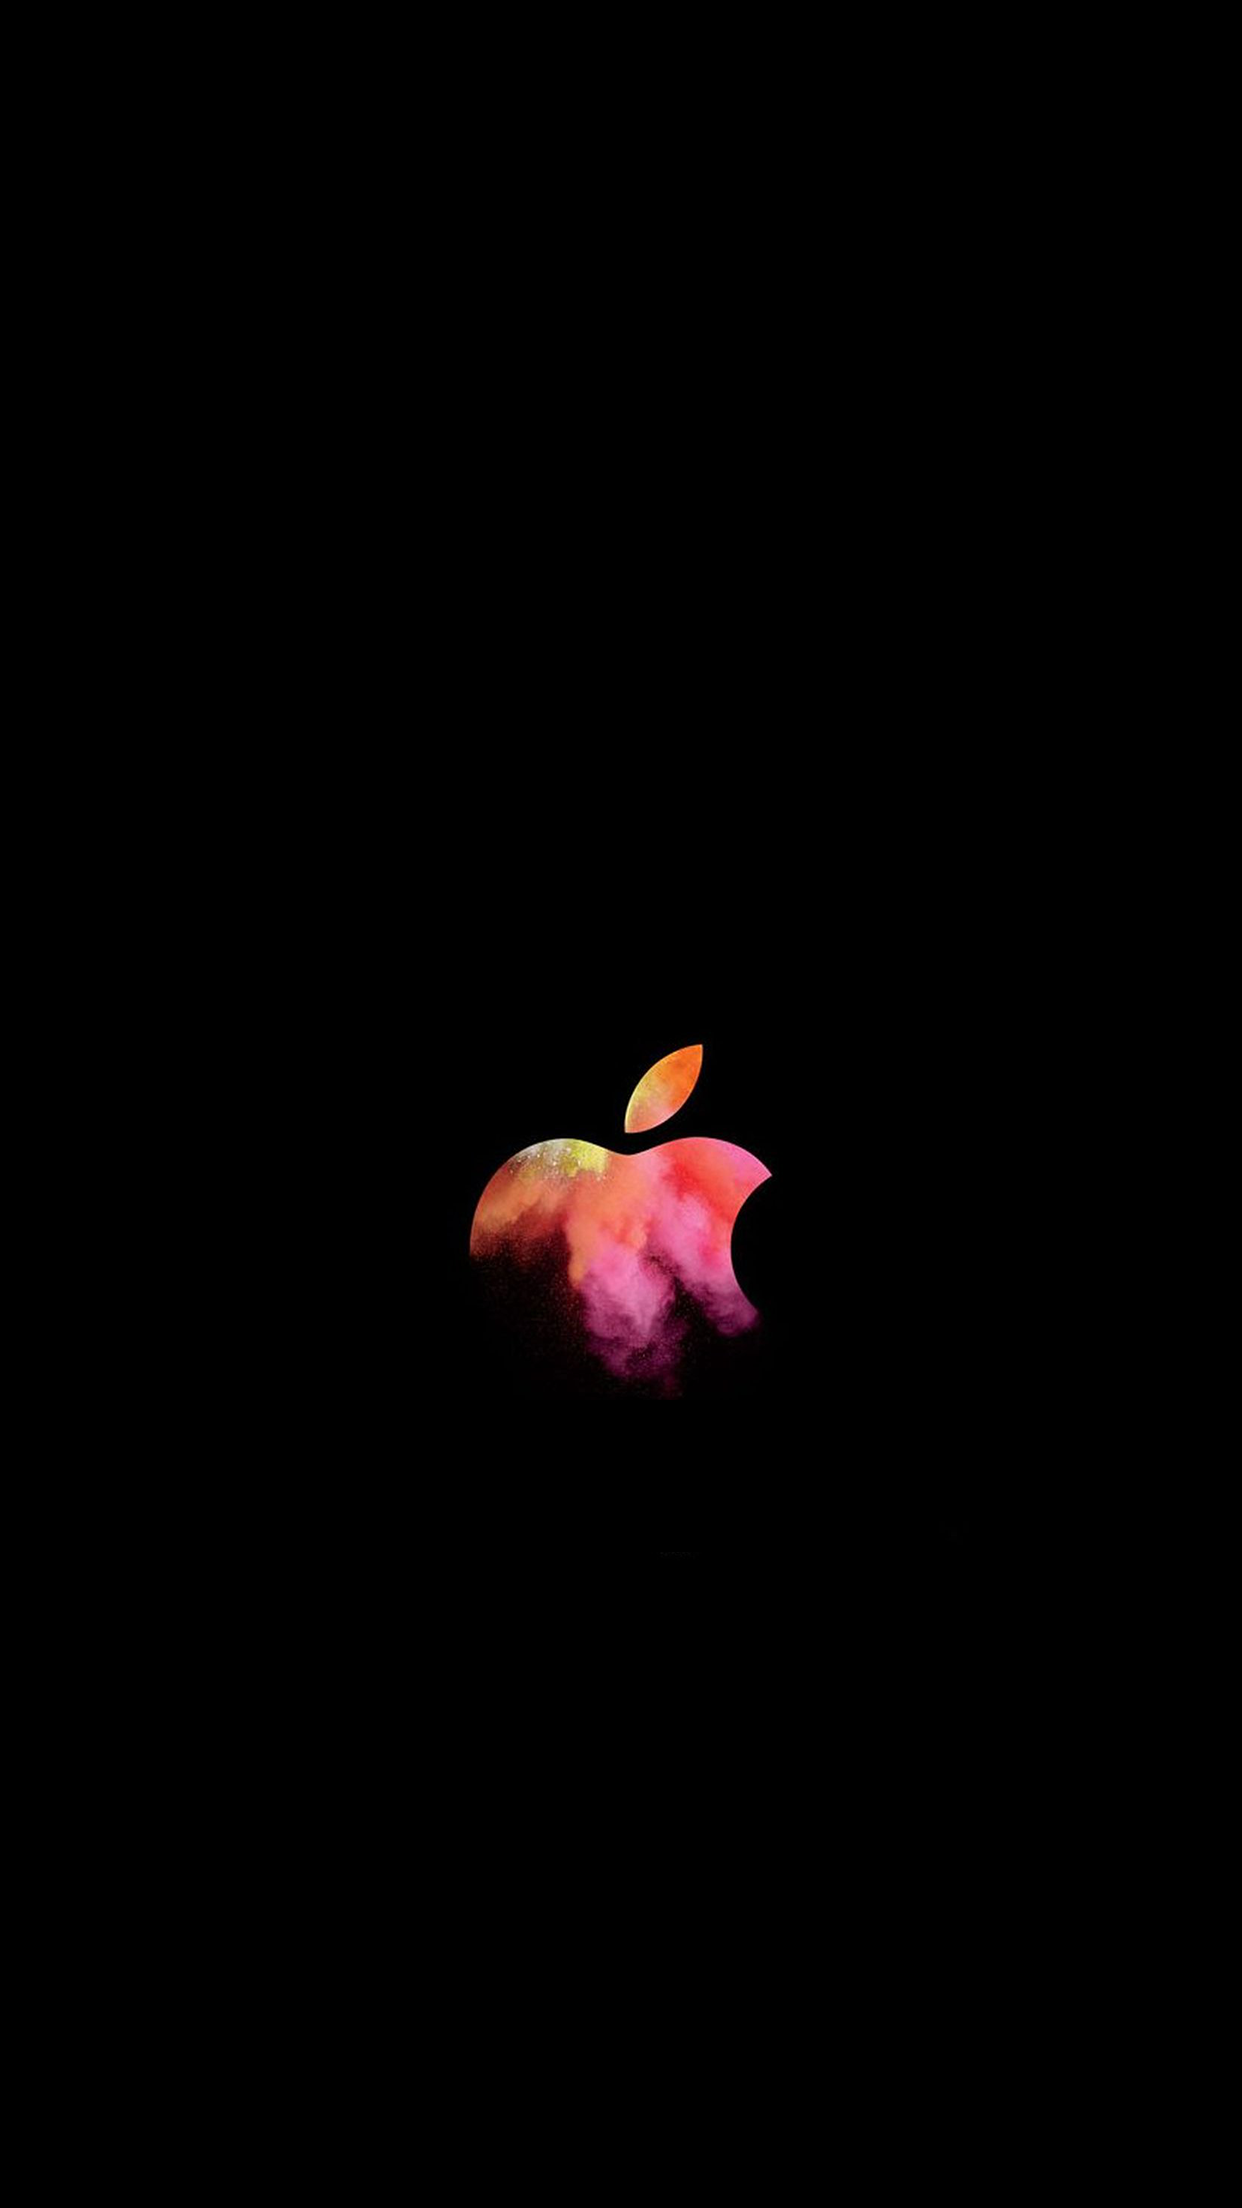 apple-october-27-event-wallpaper-hello-again-ar72014-no-phrase